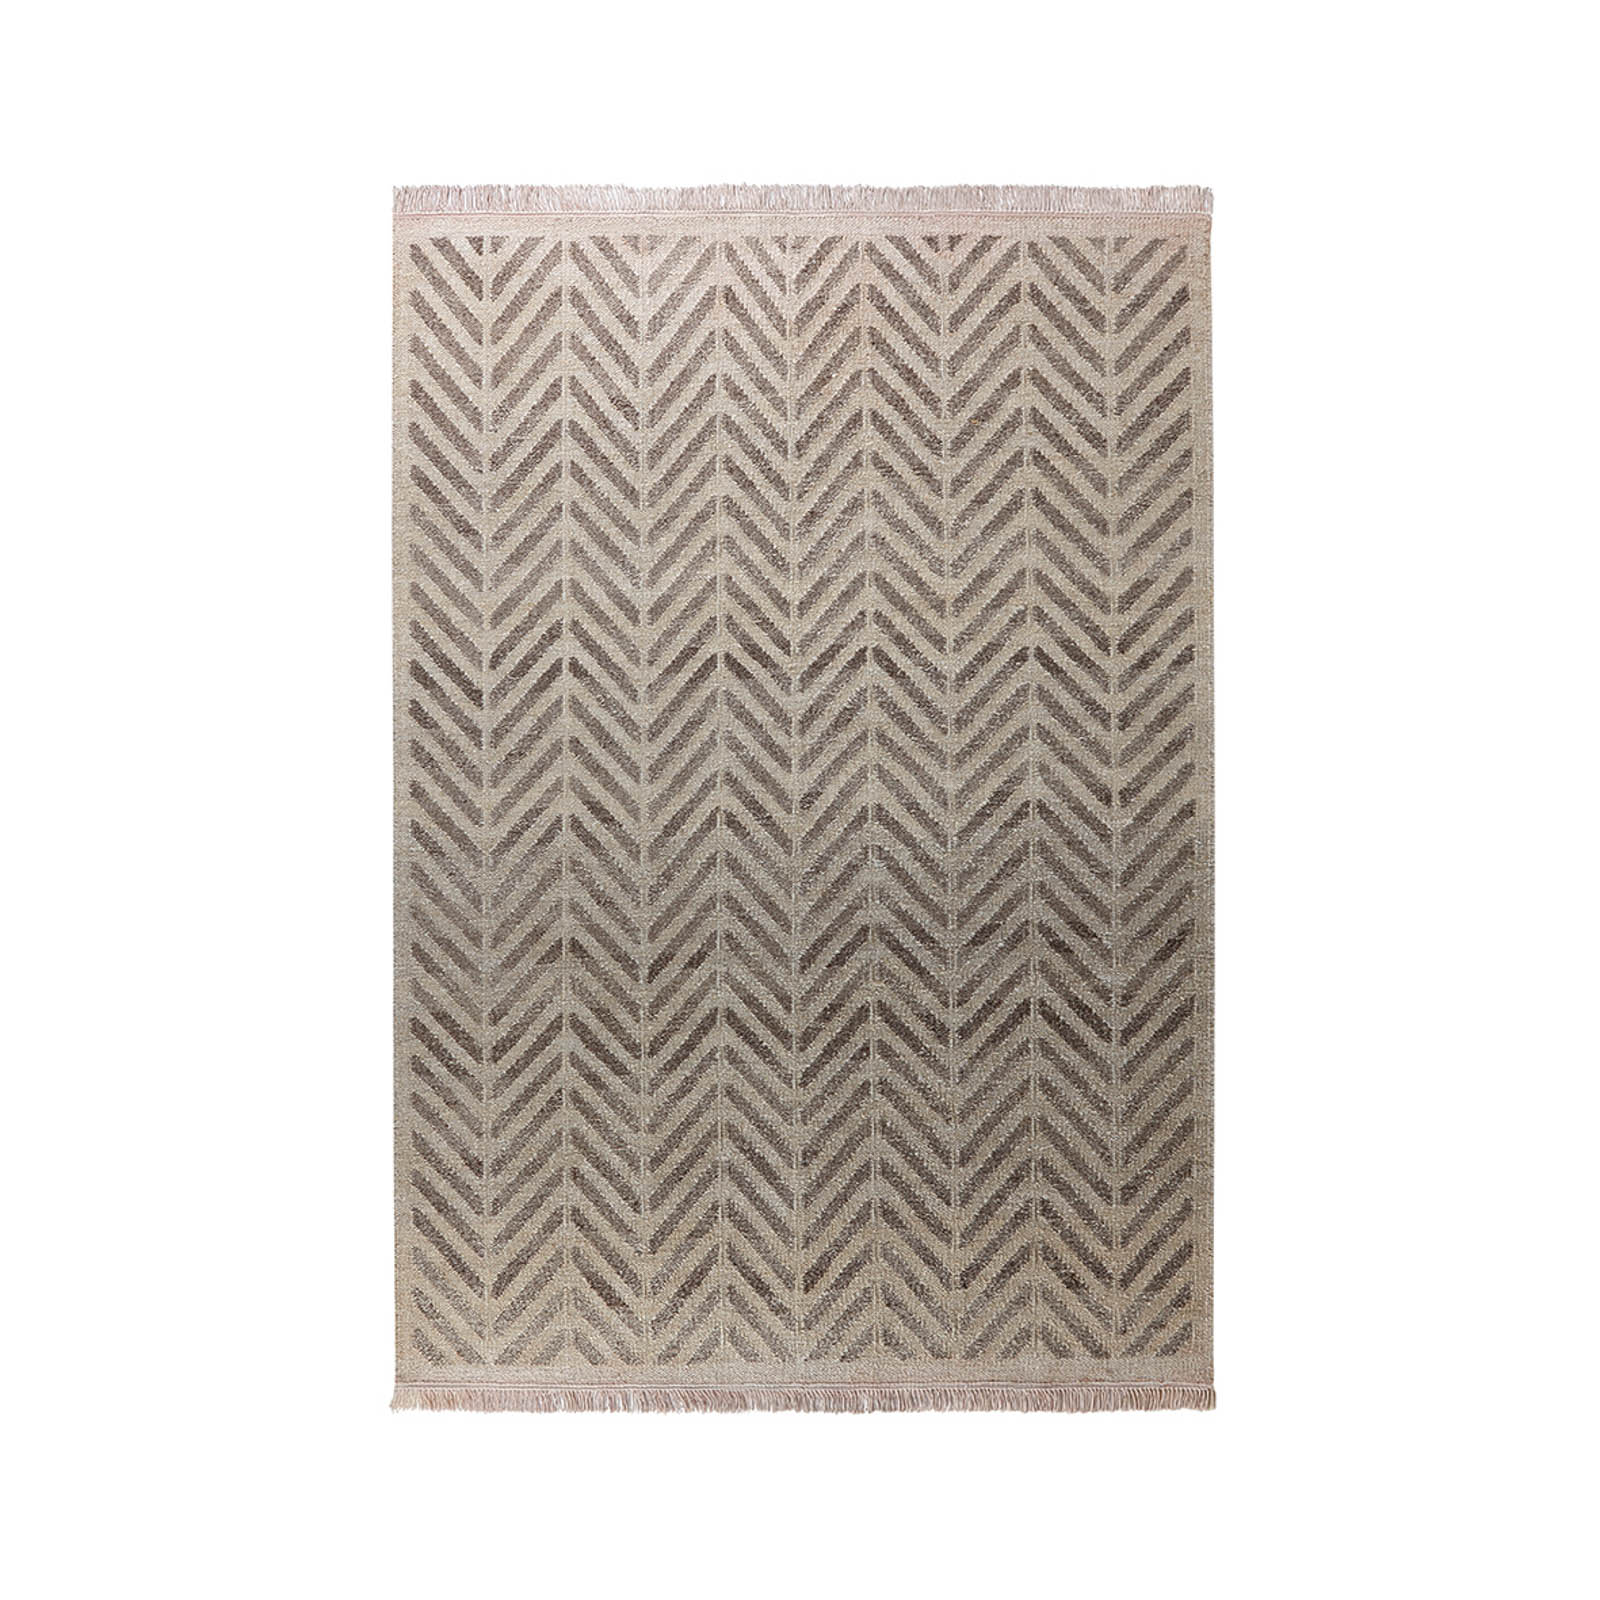 Esprit Ethno Rugs 7014 04 Taupe Grey